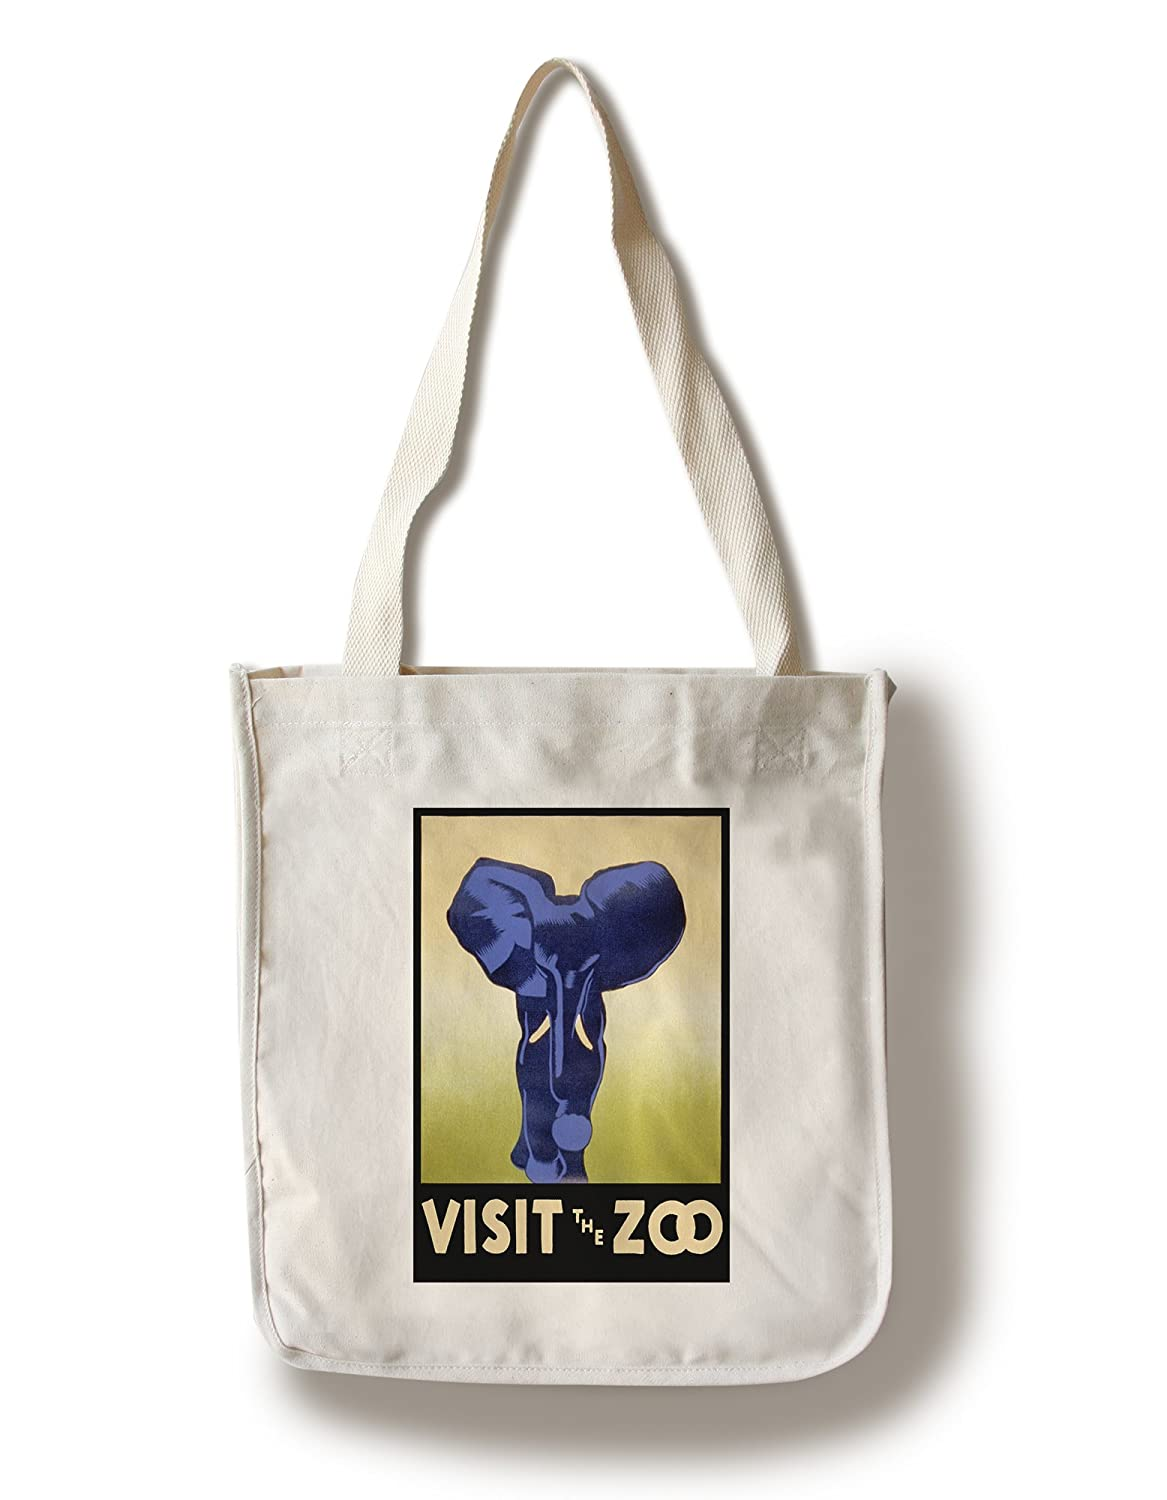 Visit the動物園 – 象充電 Canvas Tote Bag LANT-31799-TT B01841RLWG  Canvas Tote Bag